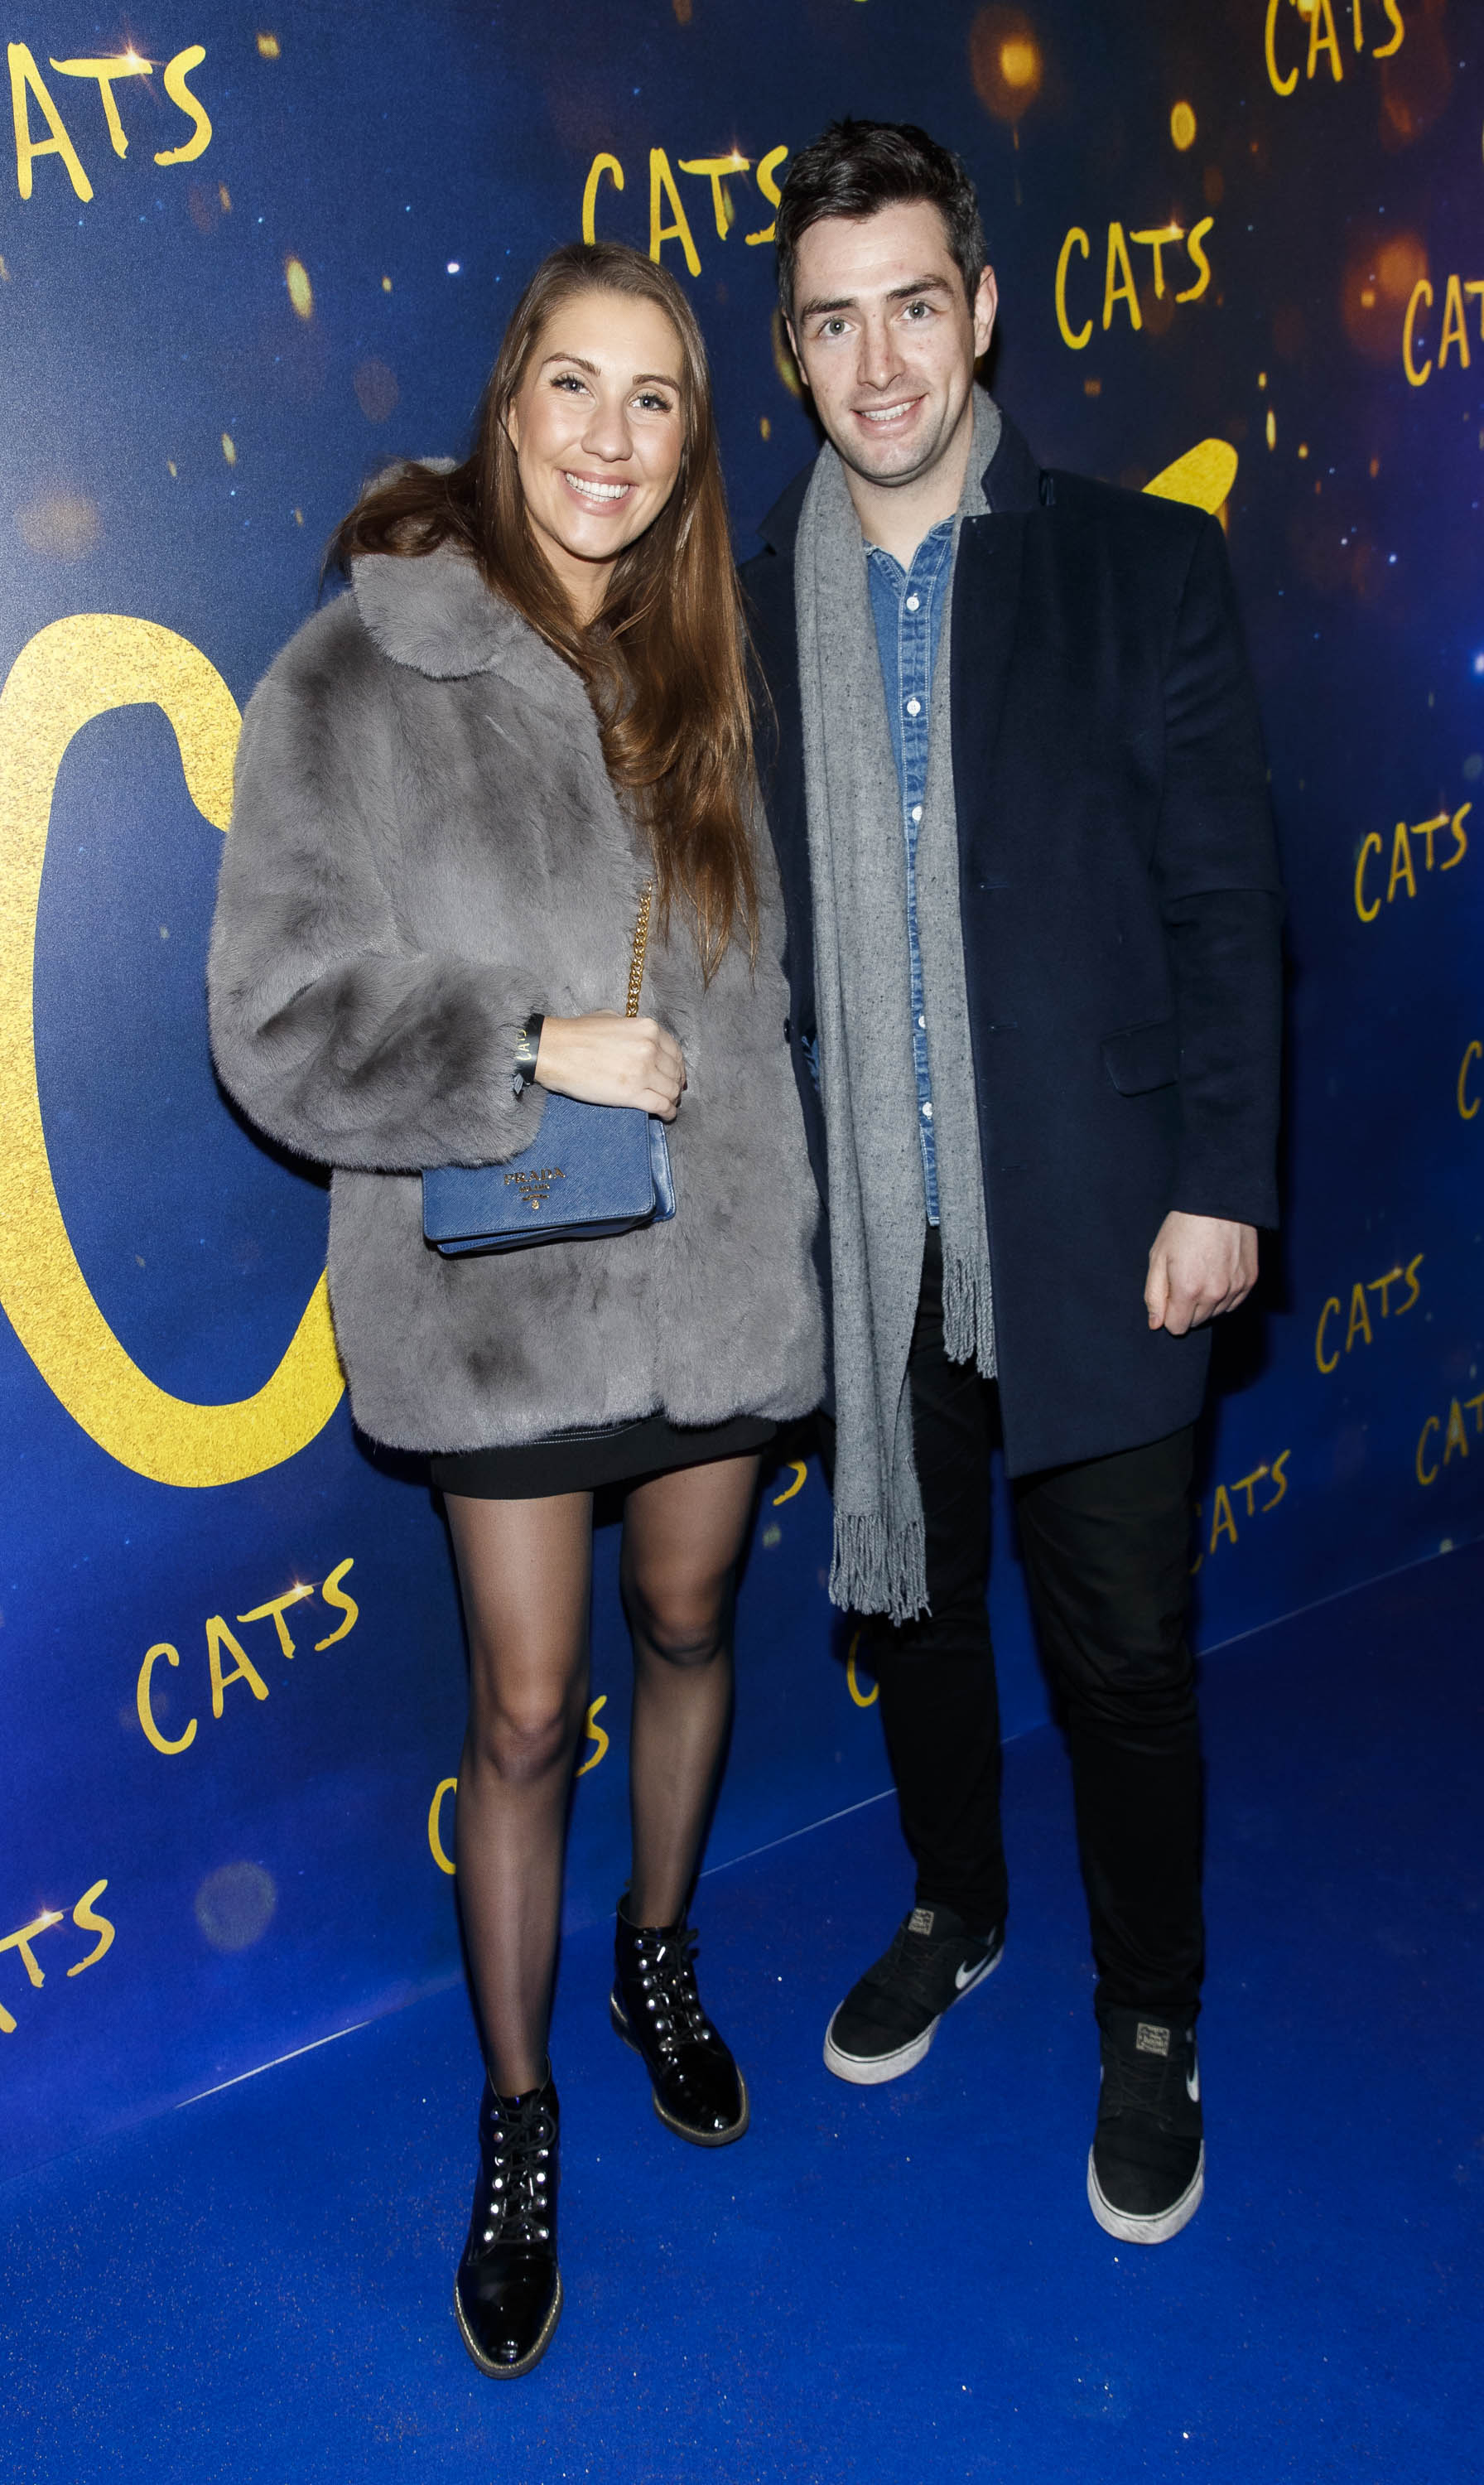 Clementine MacNeice and Jamie Lynch pictured at the Irish premiere screening of 'Cats' at The Stella Theatre, Rathmines. Picture: Andres Poveda